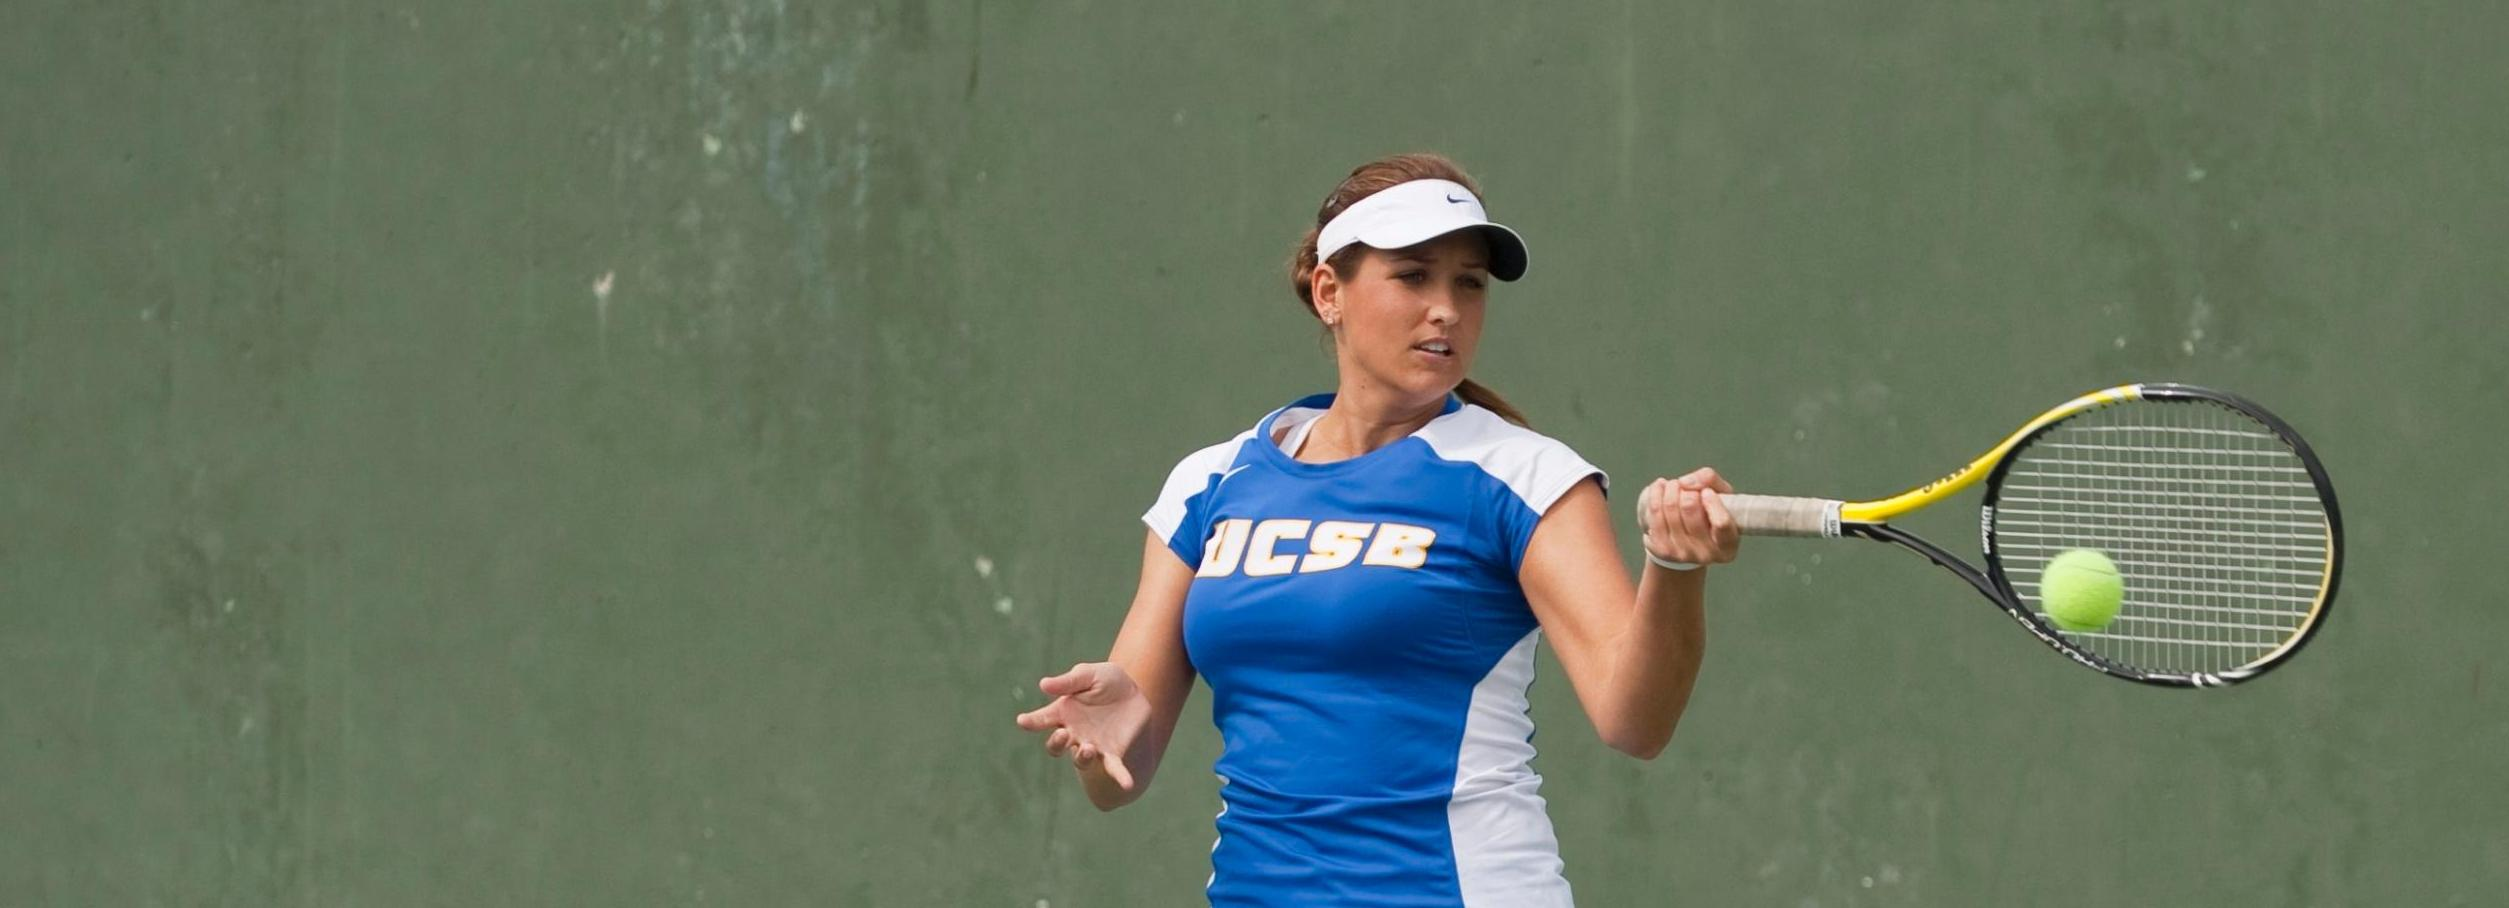 UCSB Named ITA Division I Academic All-American Team